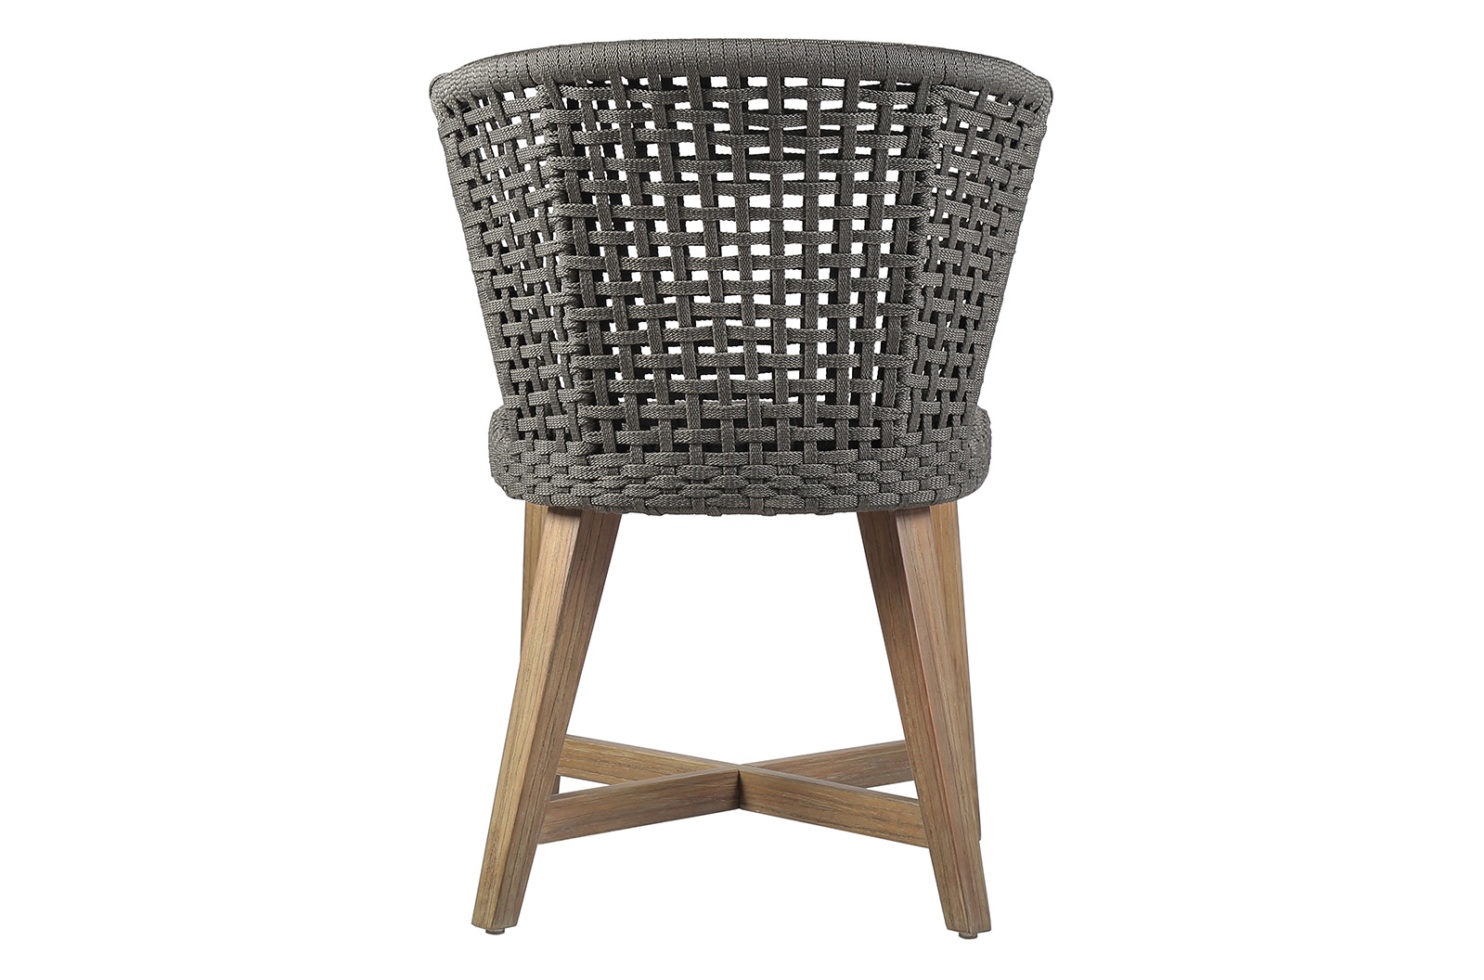 pioneer bistro chair 504FT402P2 E 1 back